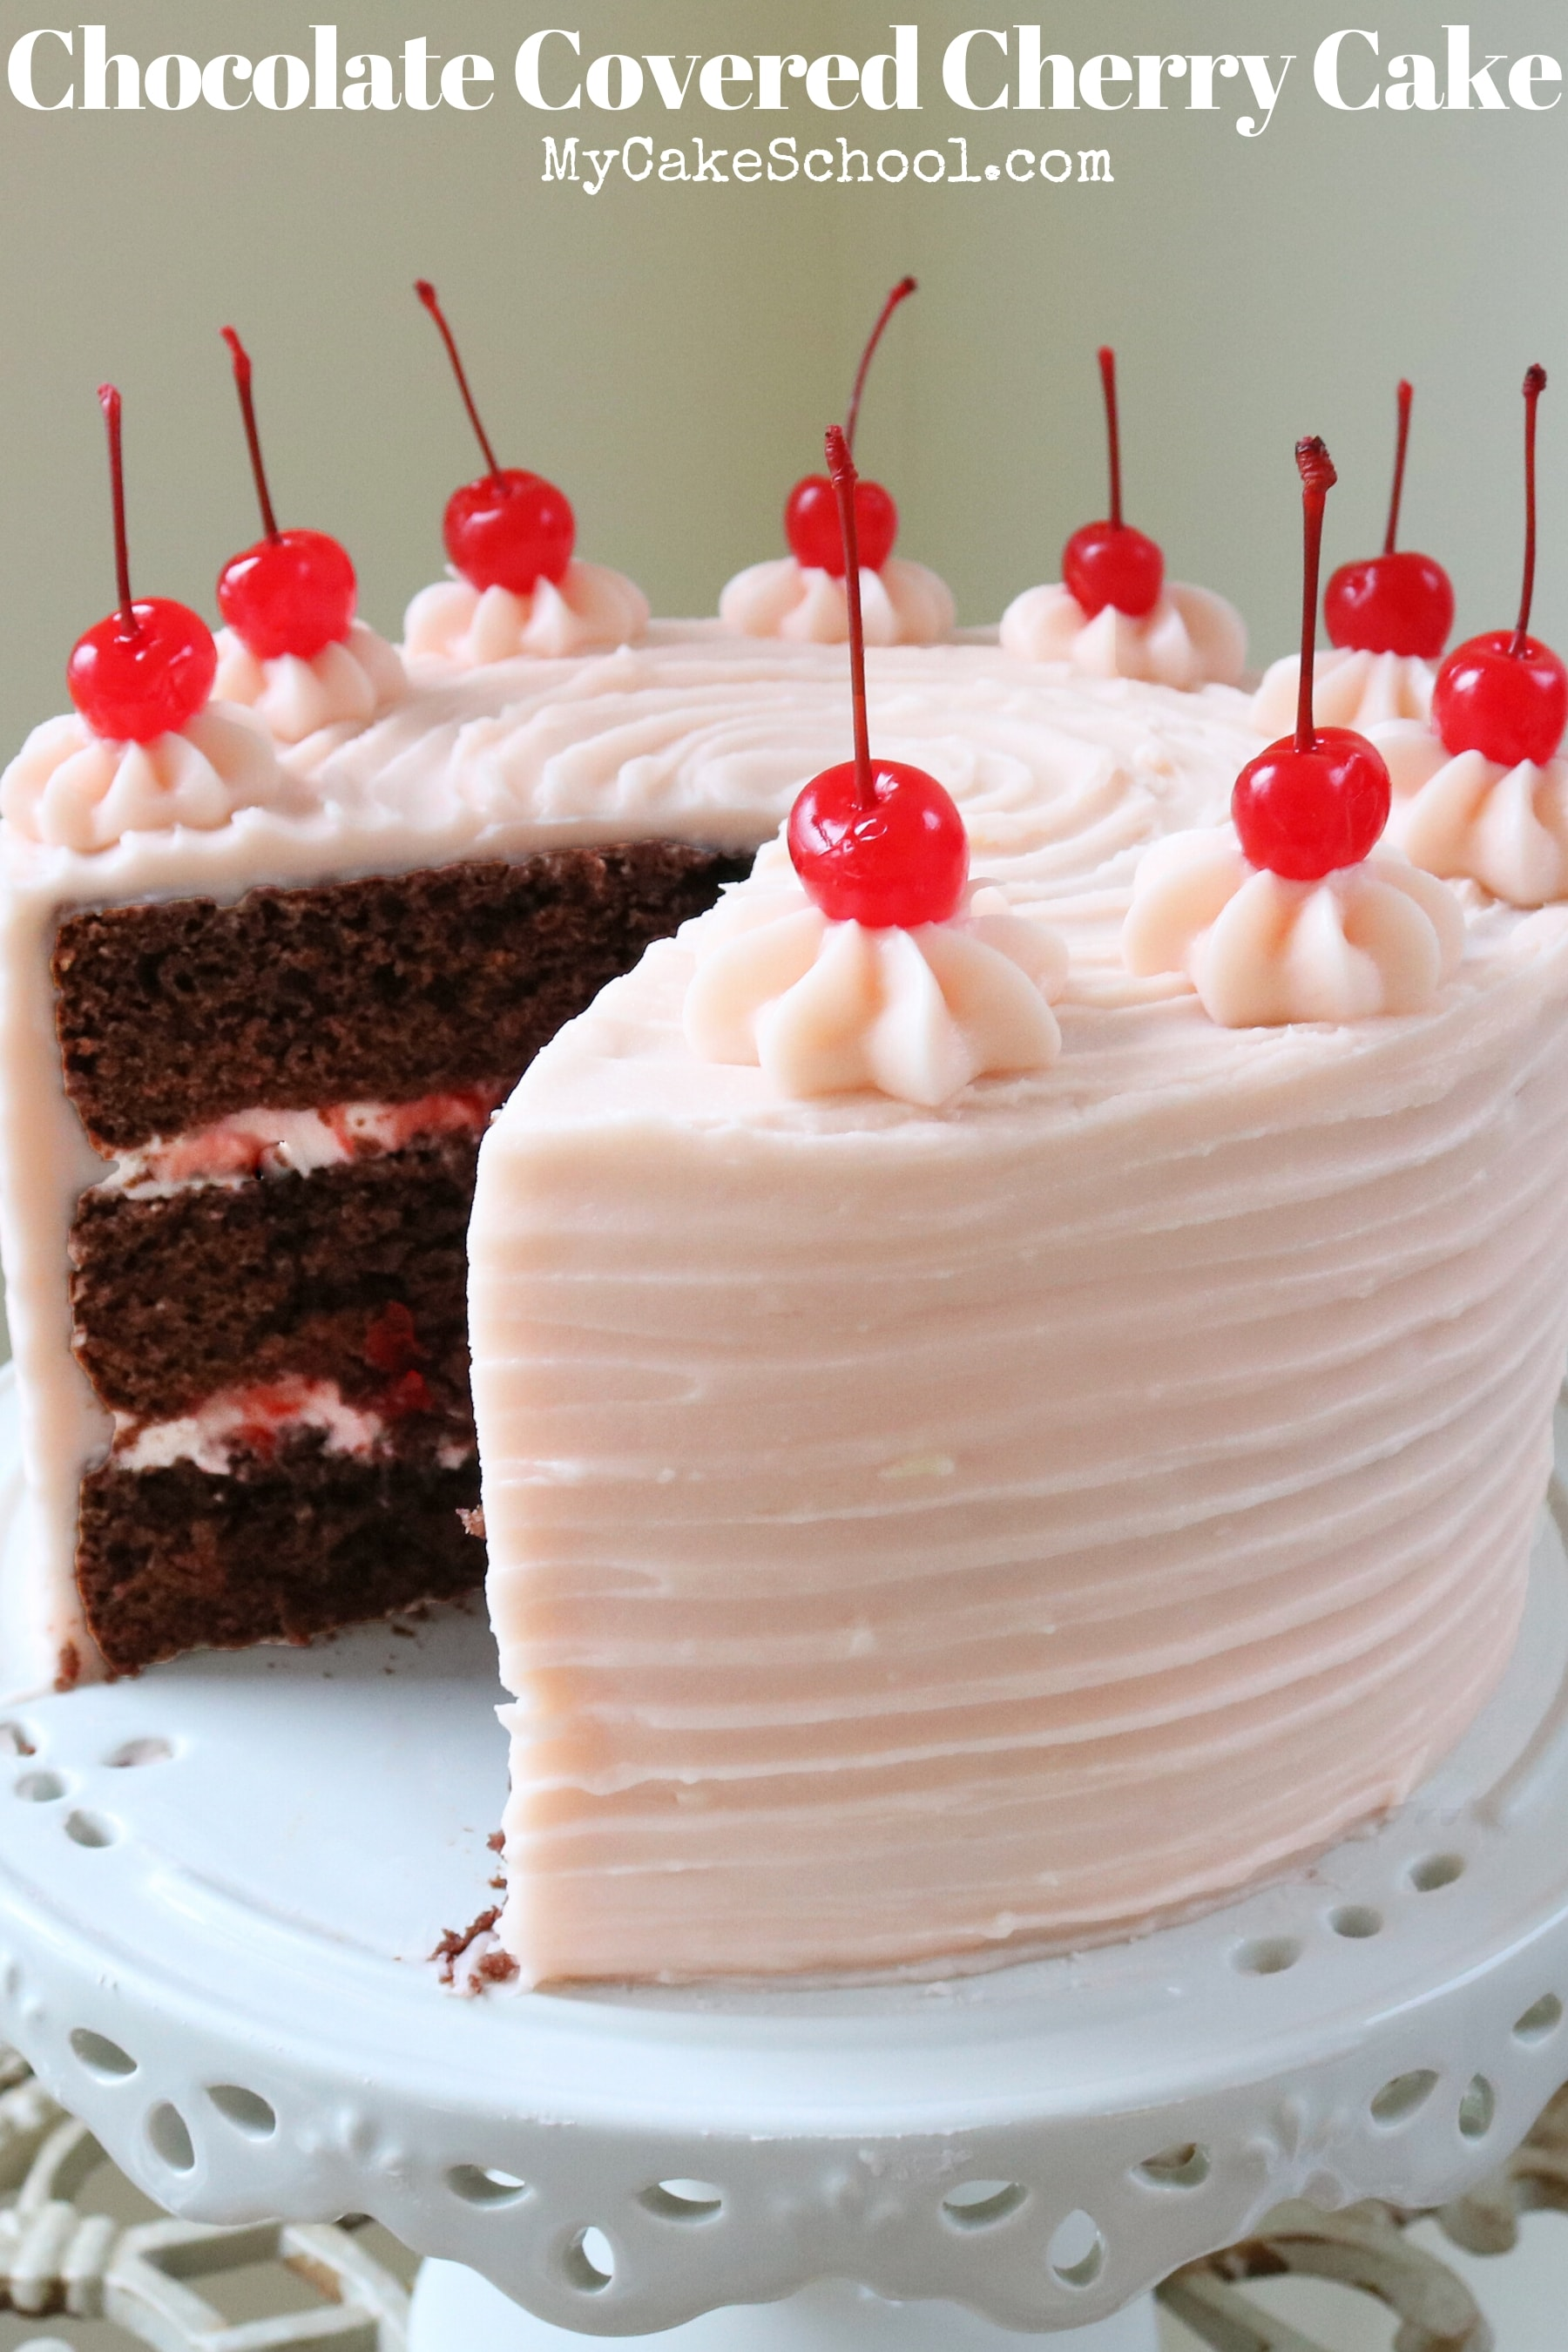 Moist and Delicious Chocolate Covered Cherry Cake Recipe